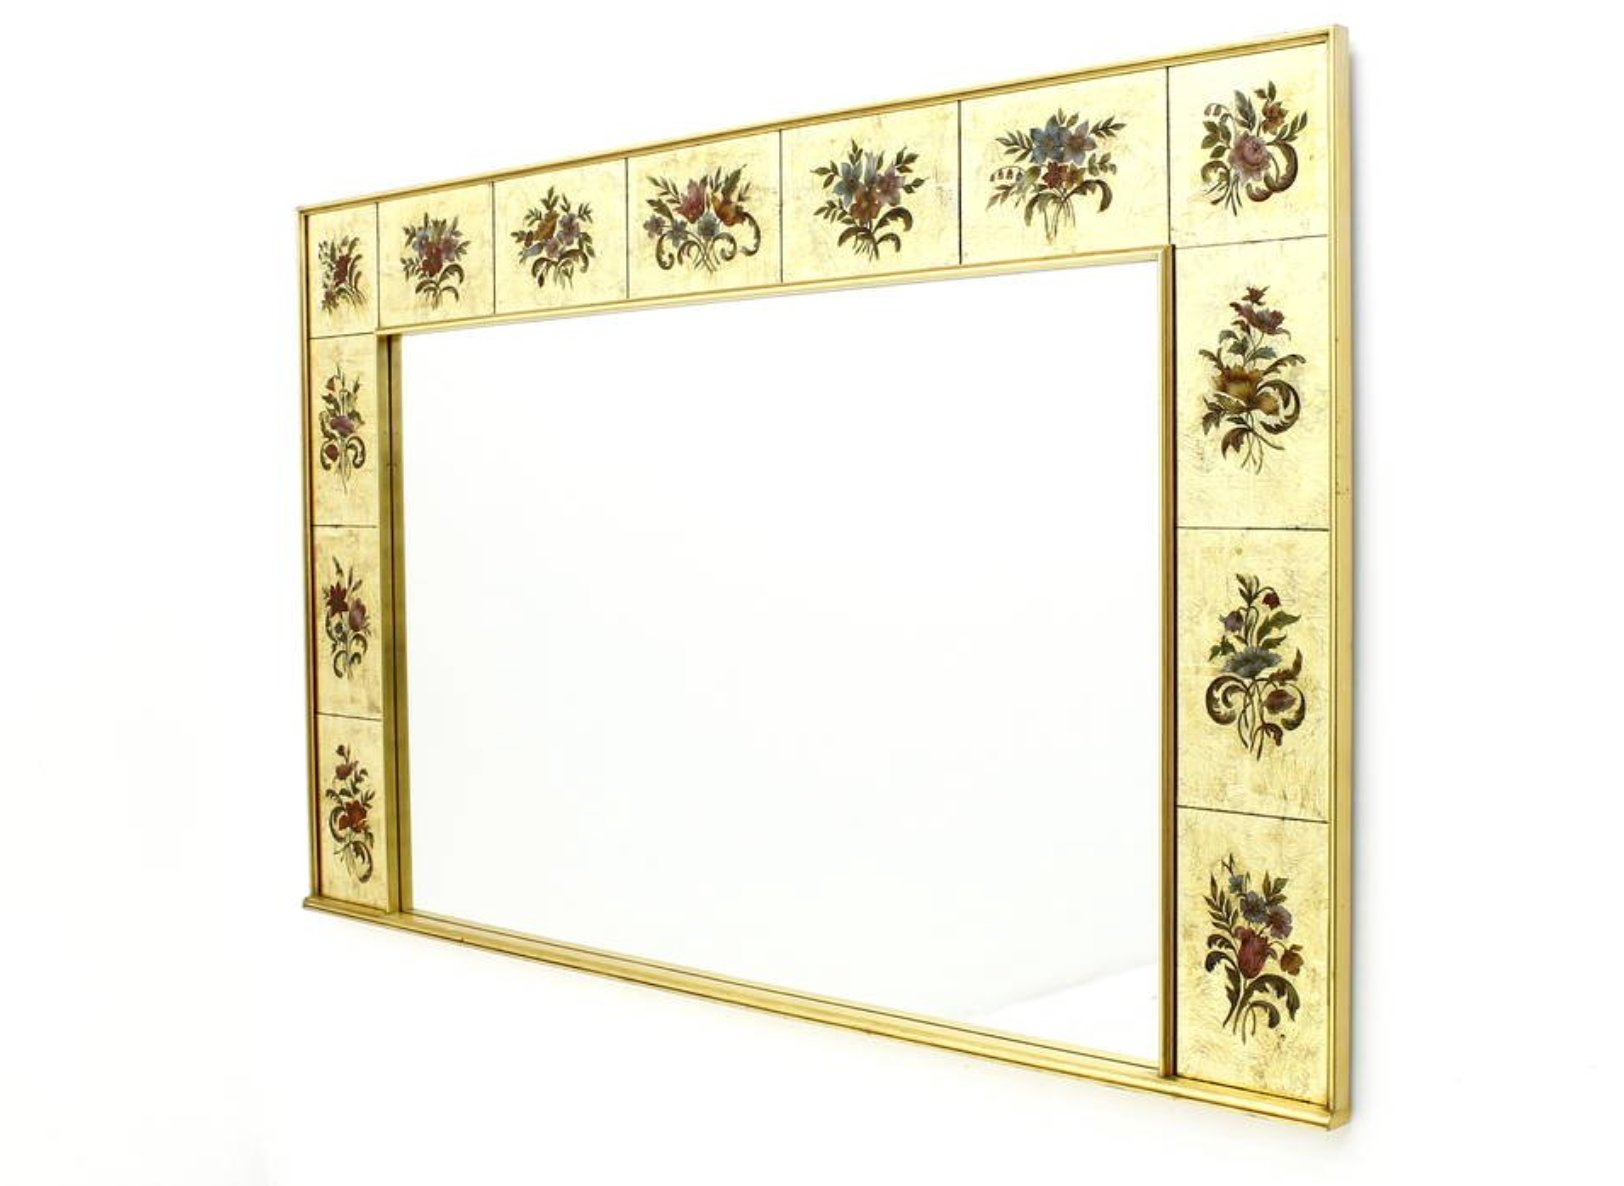 Large decorative wall mirror 1980s for sale at pamono Large wooden mirrors for sale